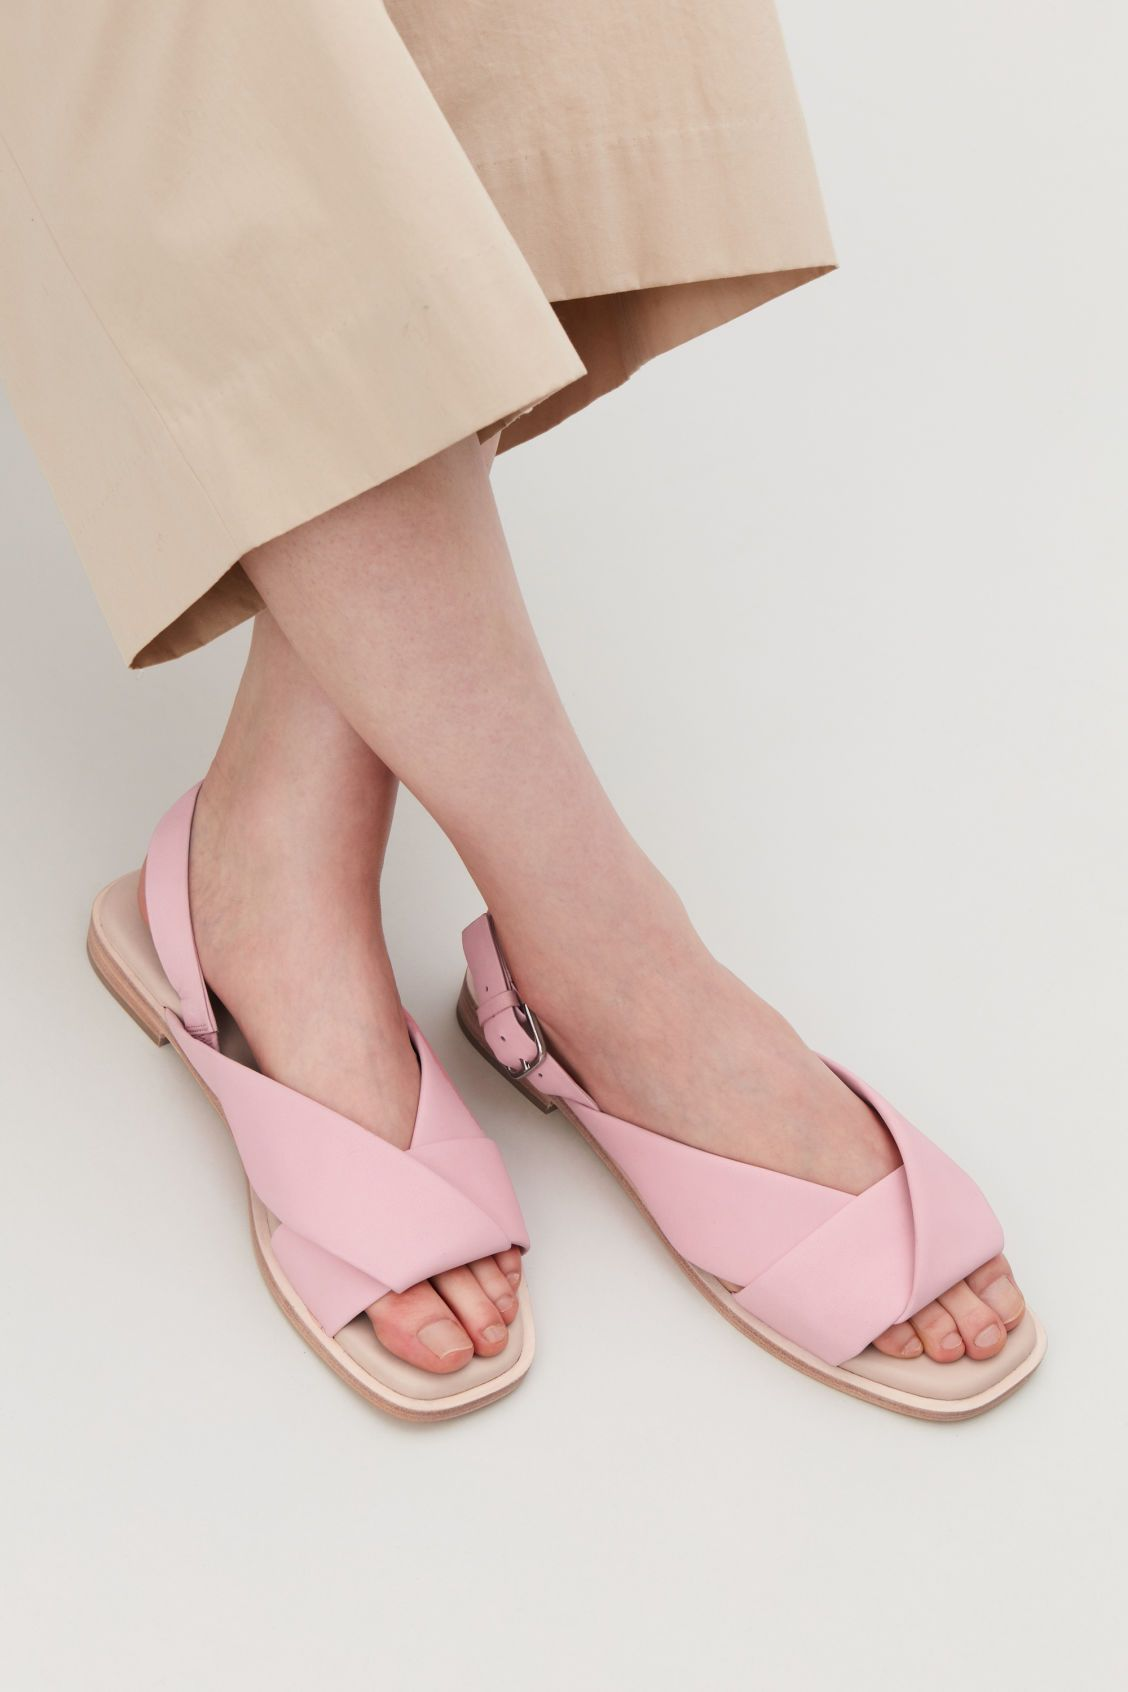 8d02566871dd3 Detailed image of Cos knotted leather sandals in pink